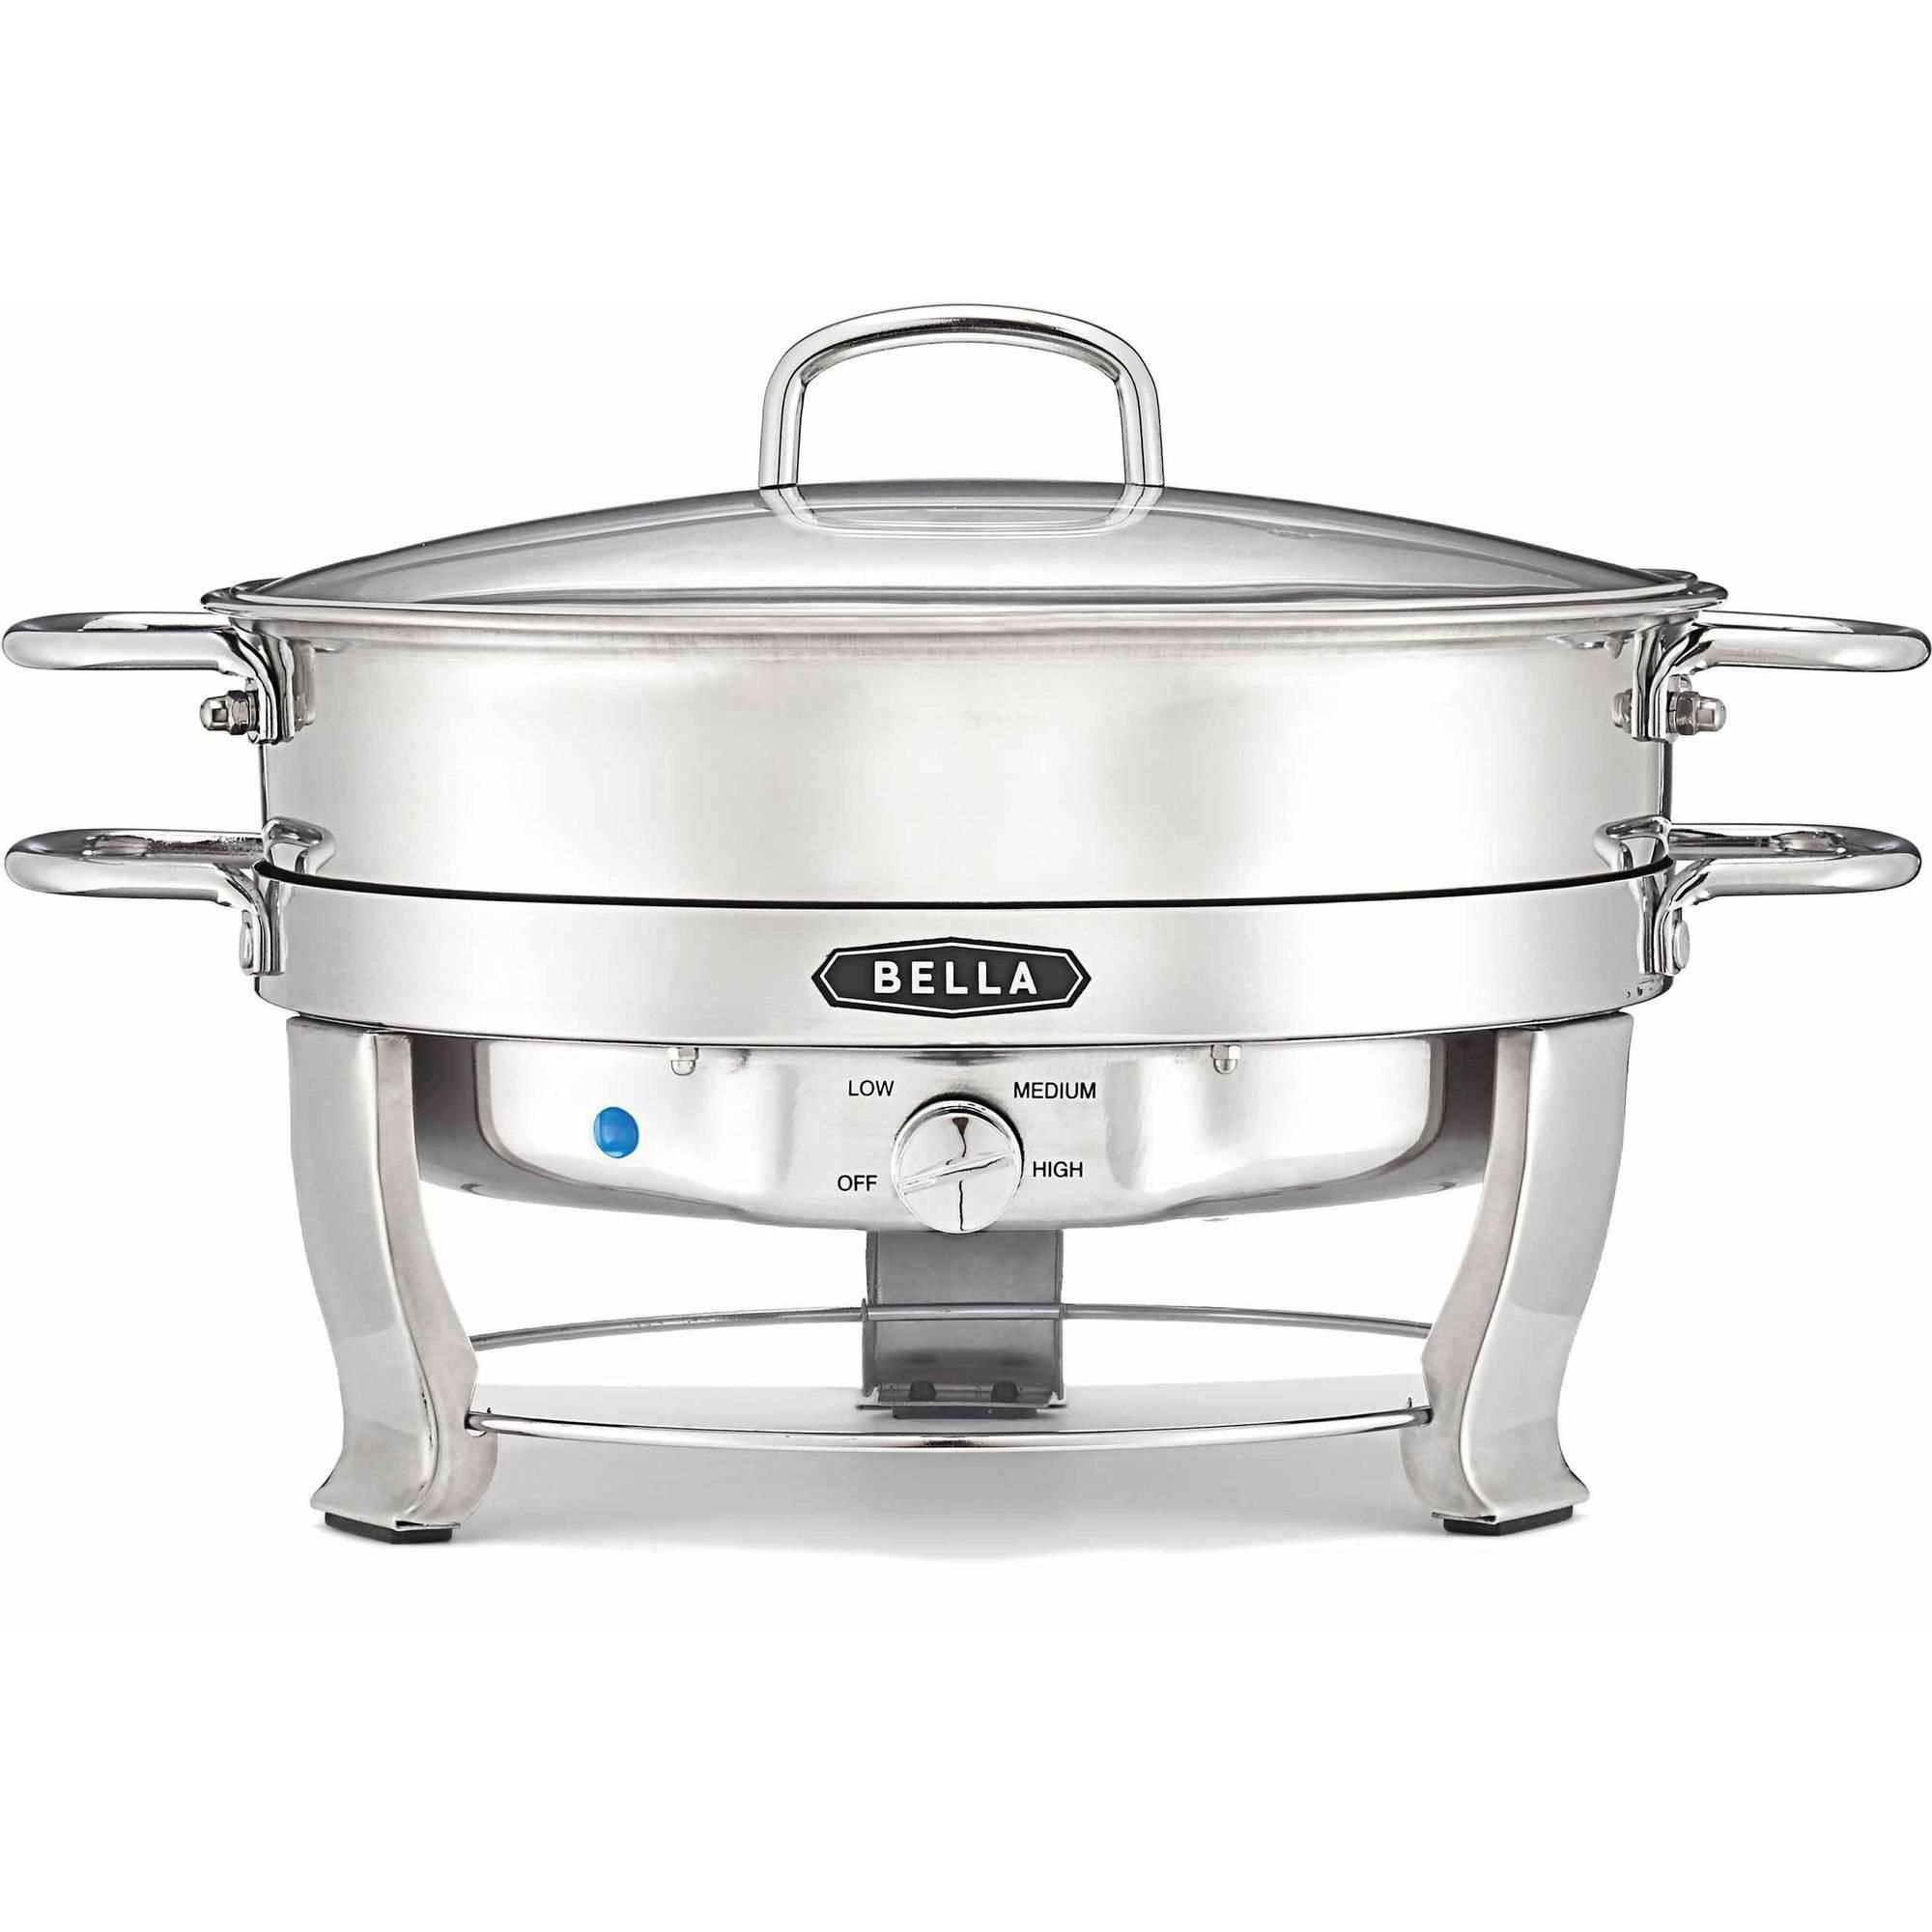 Bella Stainless Steel Electric Chafing Dish